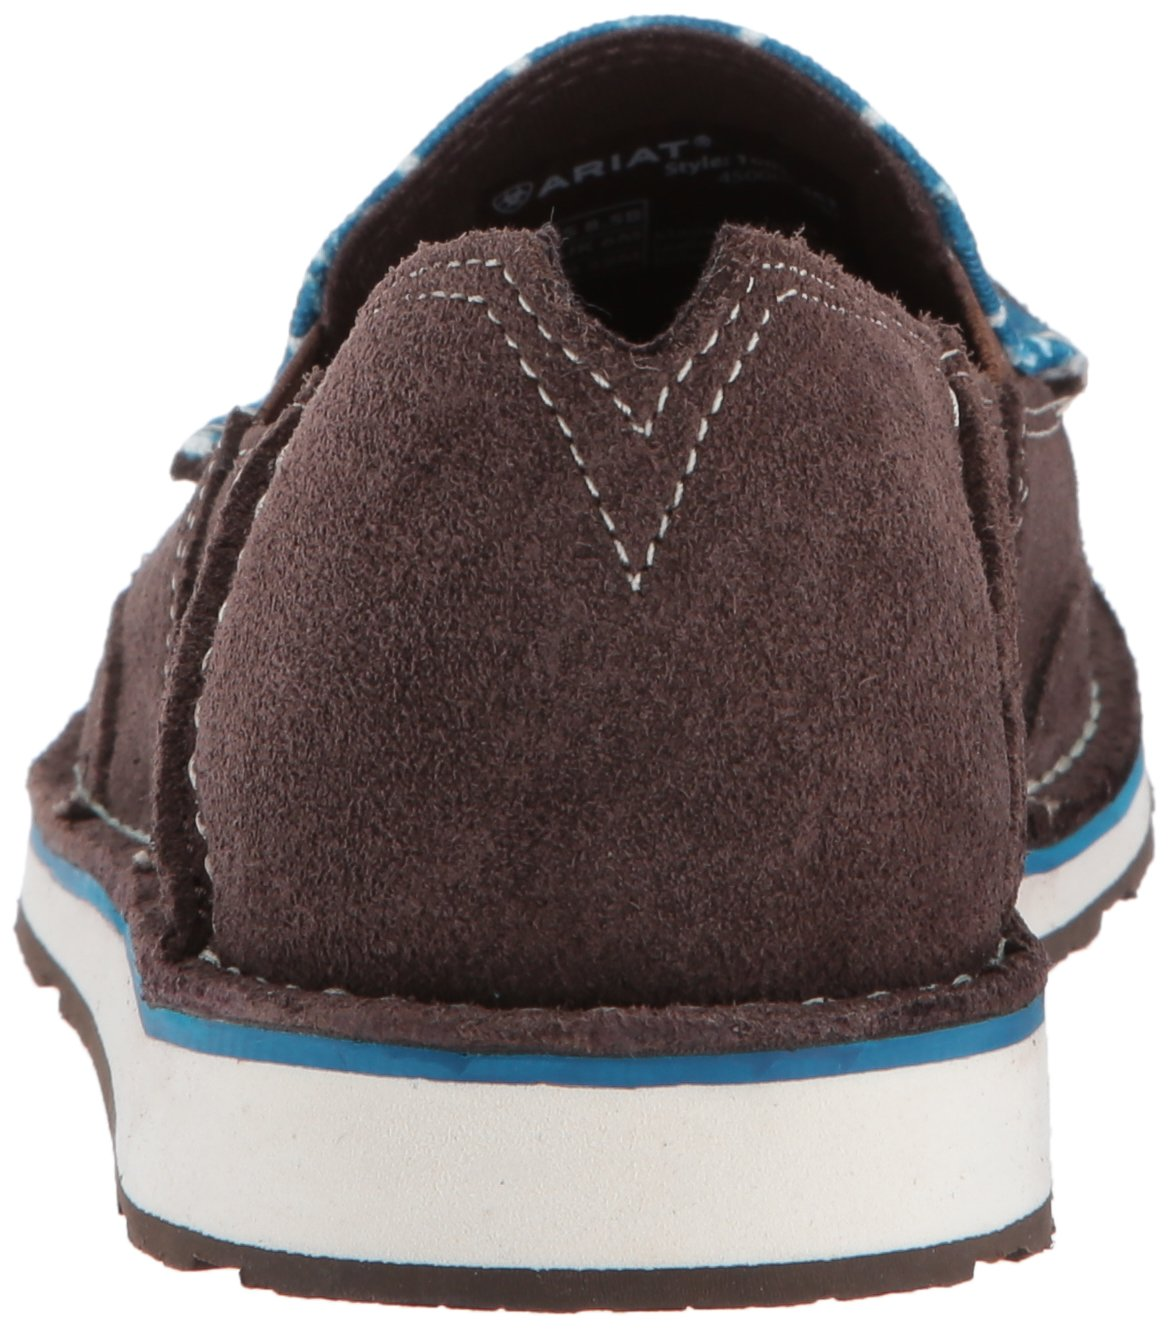 Ariat Women's Cruiser Slip-on Shoe B01N9XLIOC 5.5 B(M) US|Chocolate/Seaport Shoes